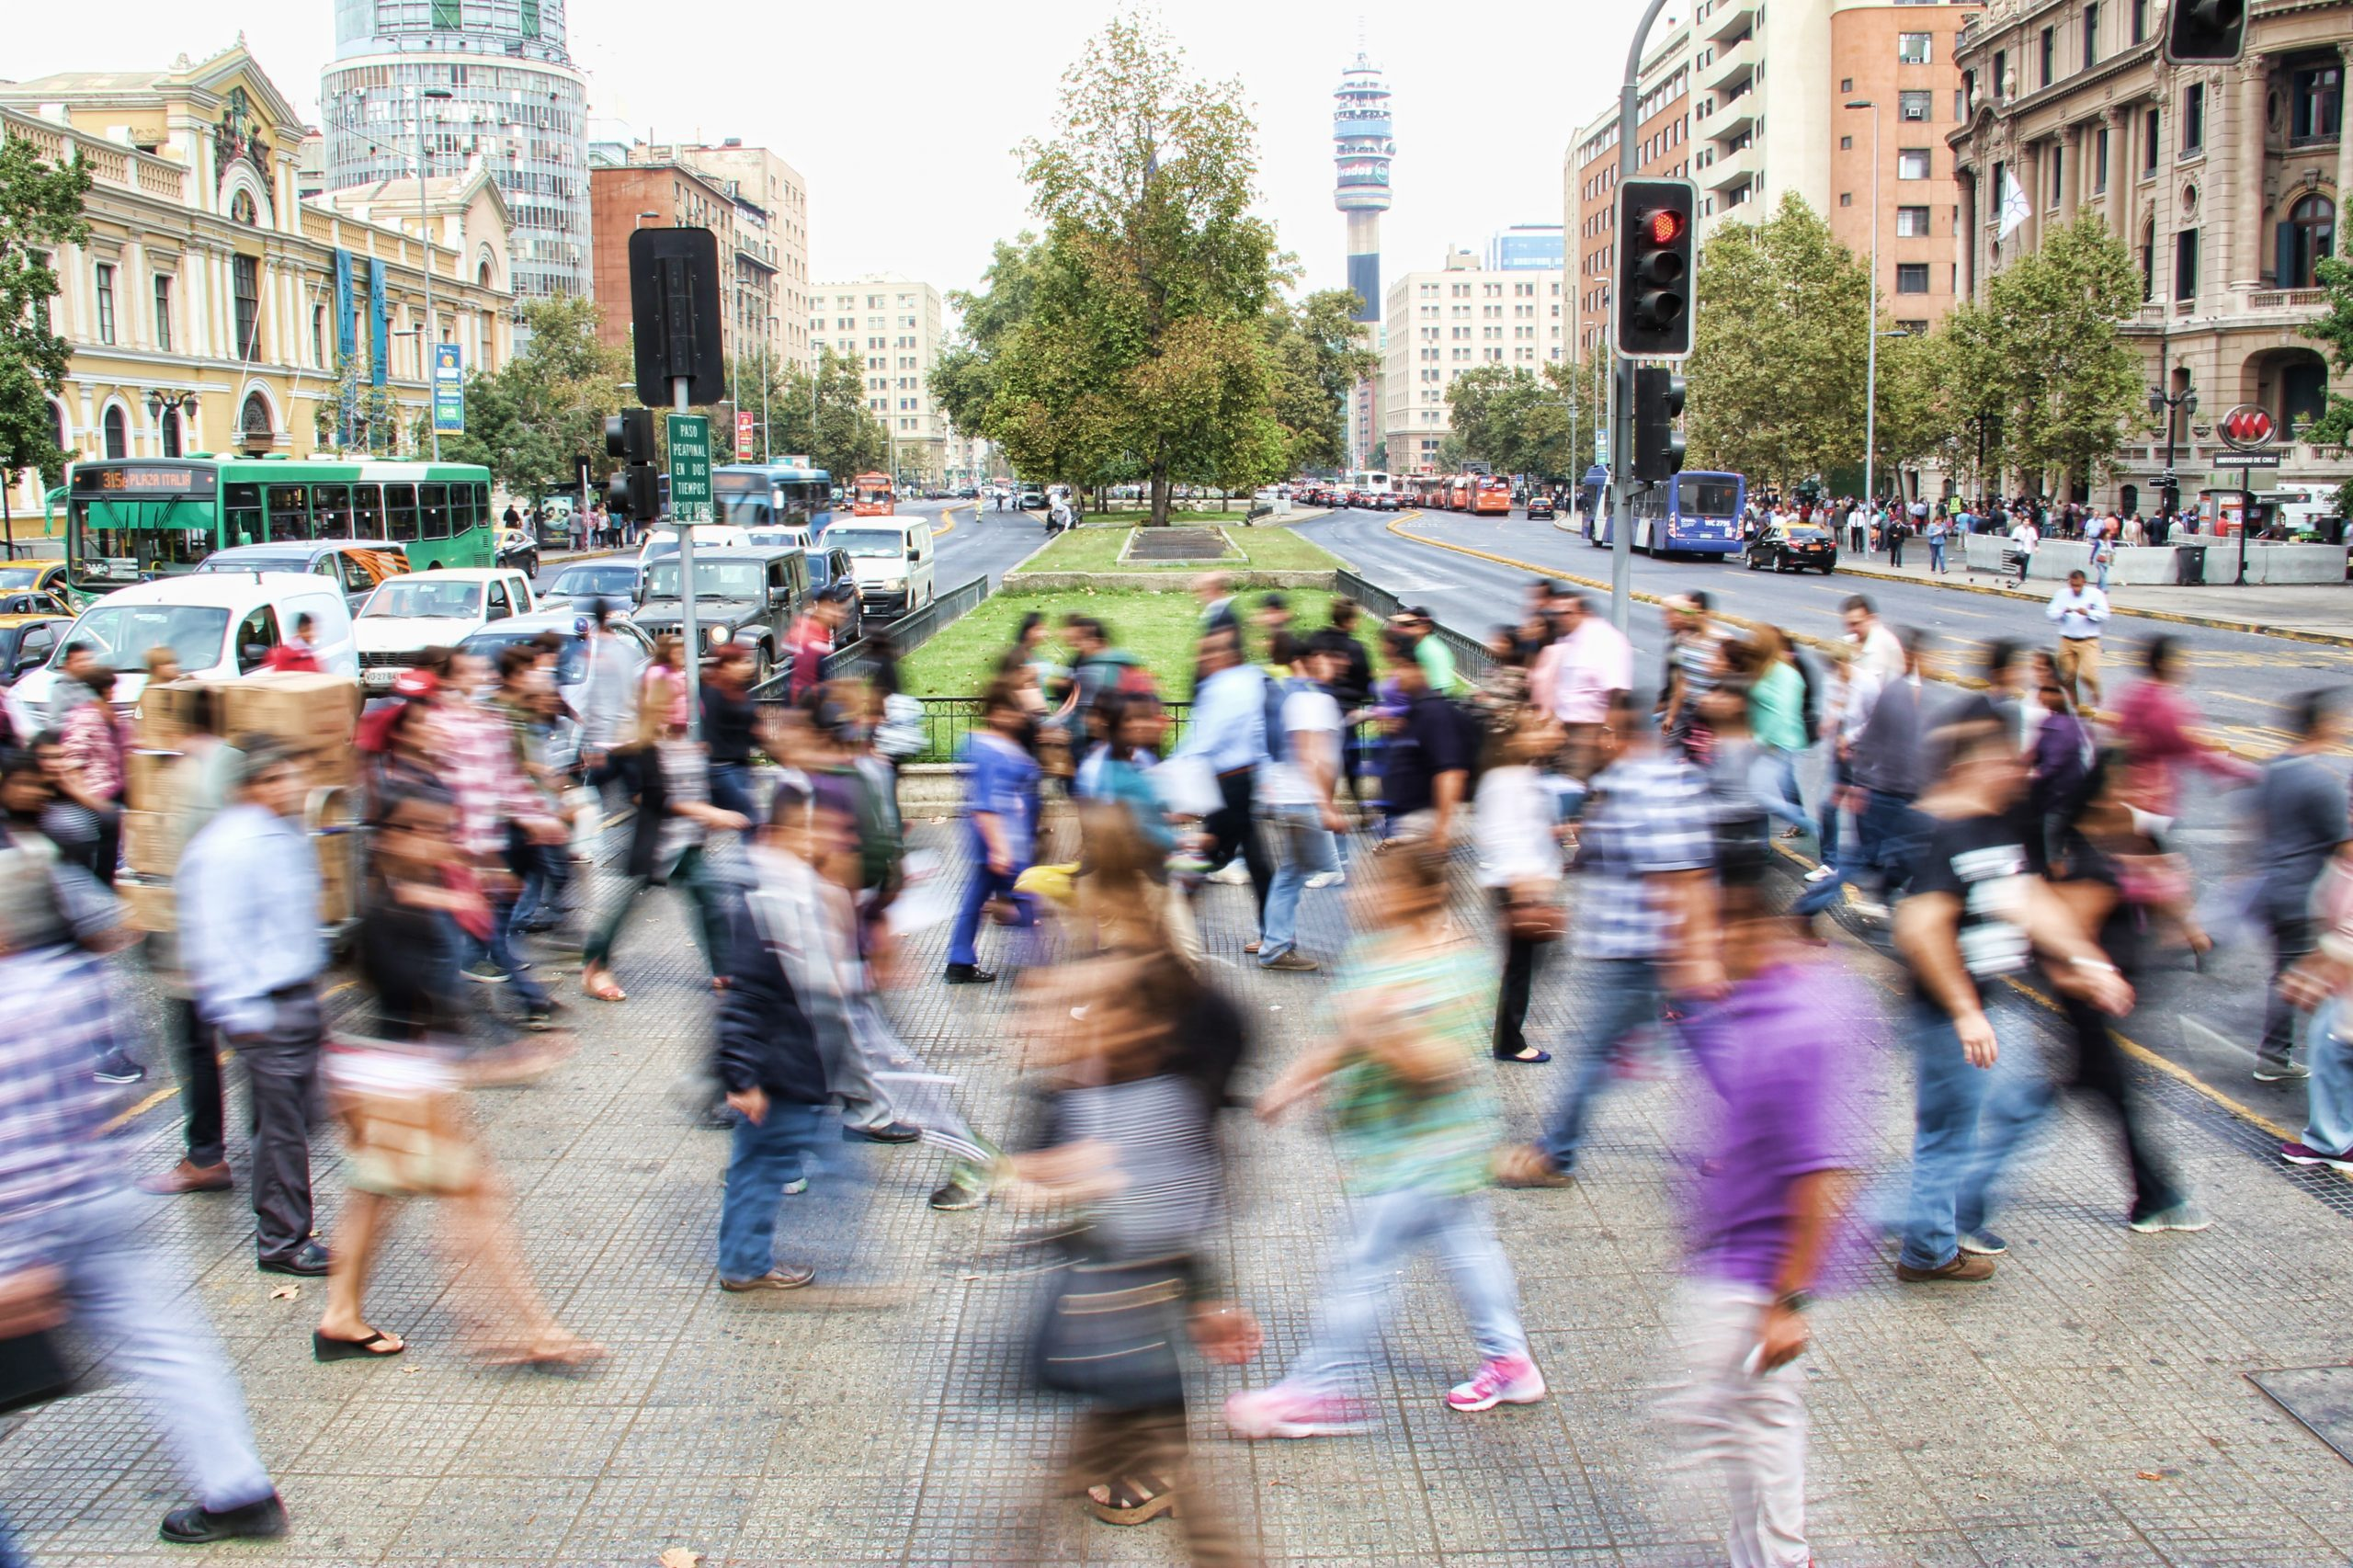 blurred image of people in busy road